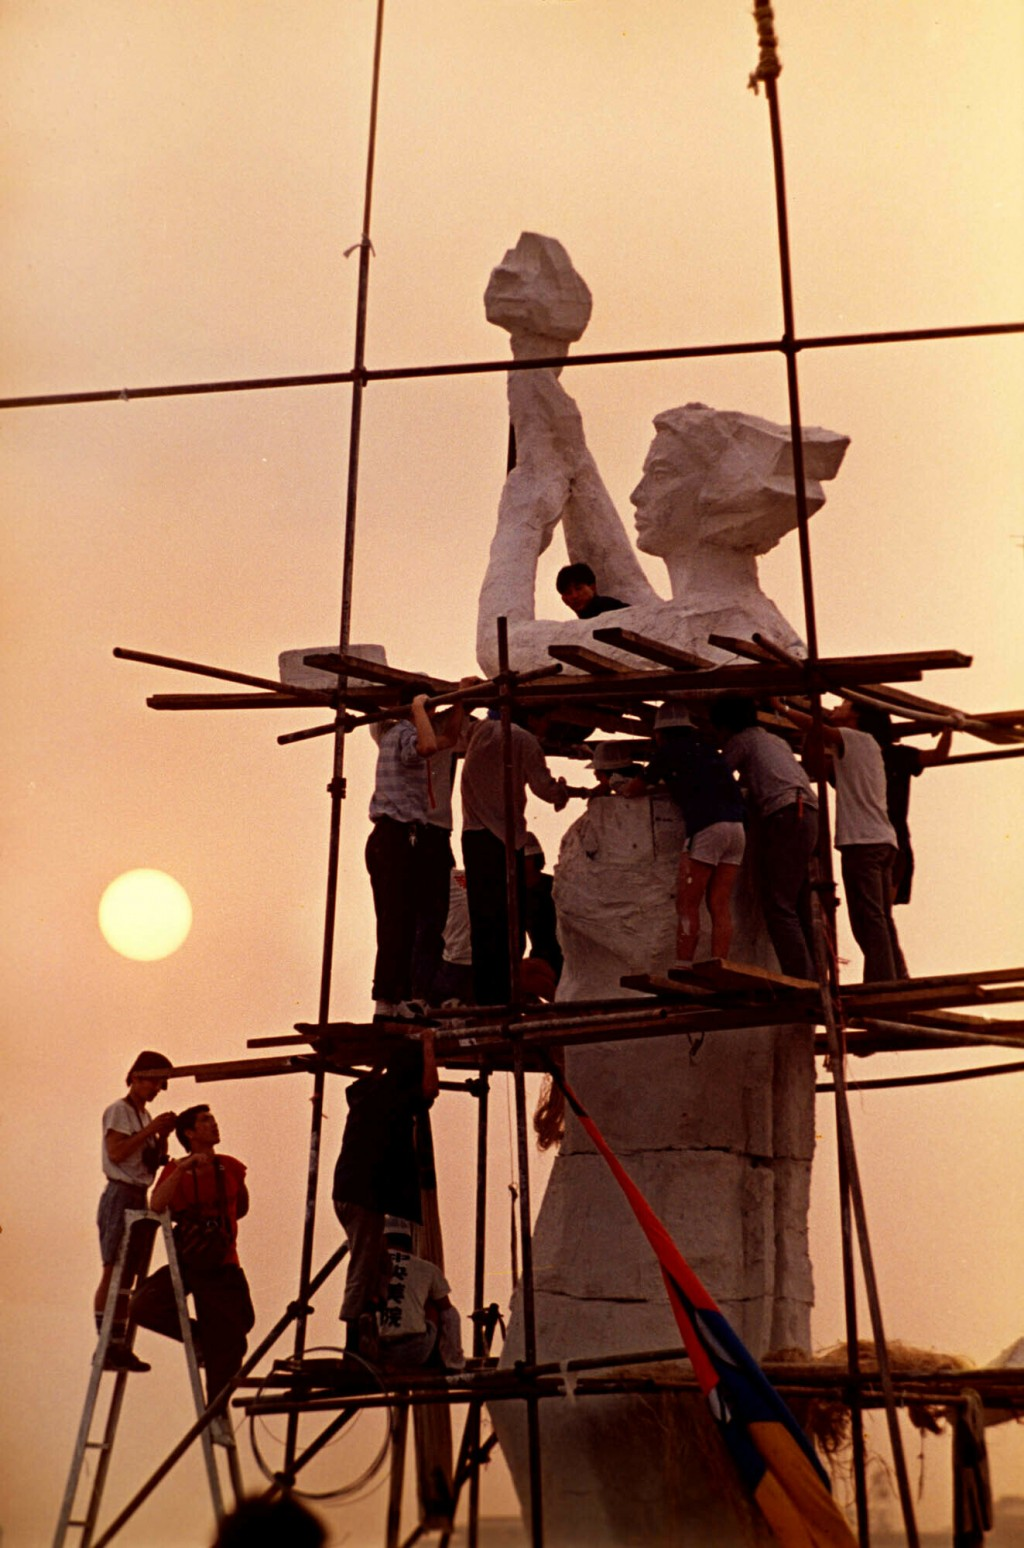 FILE - In this May 30, 1989 file photo, protesters occupying Beijing's Tiananmen Square work on the statue of the Goddess of Democracy. The makeshift